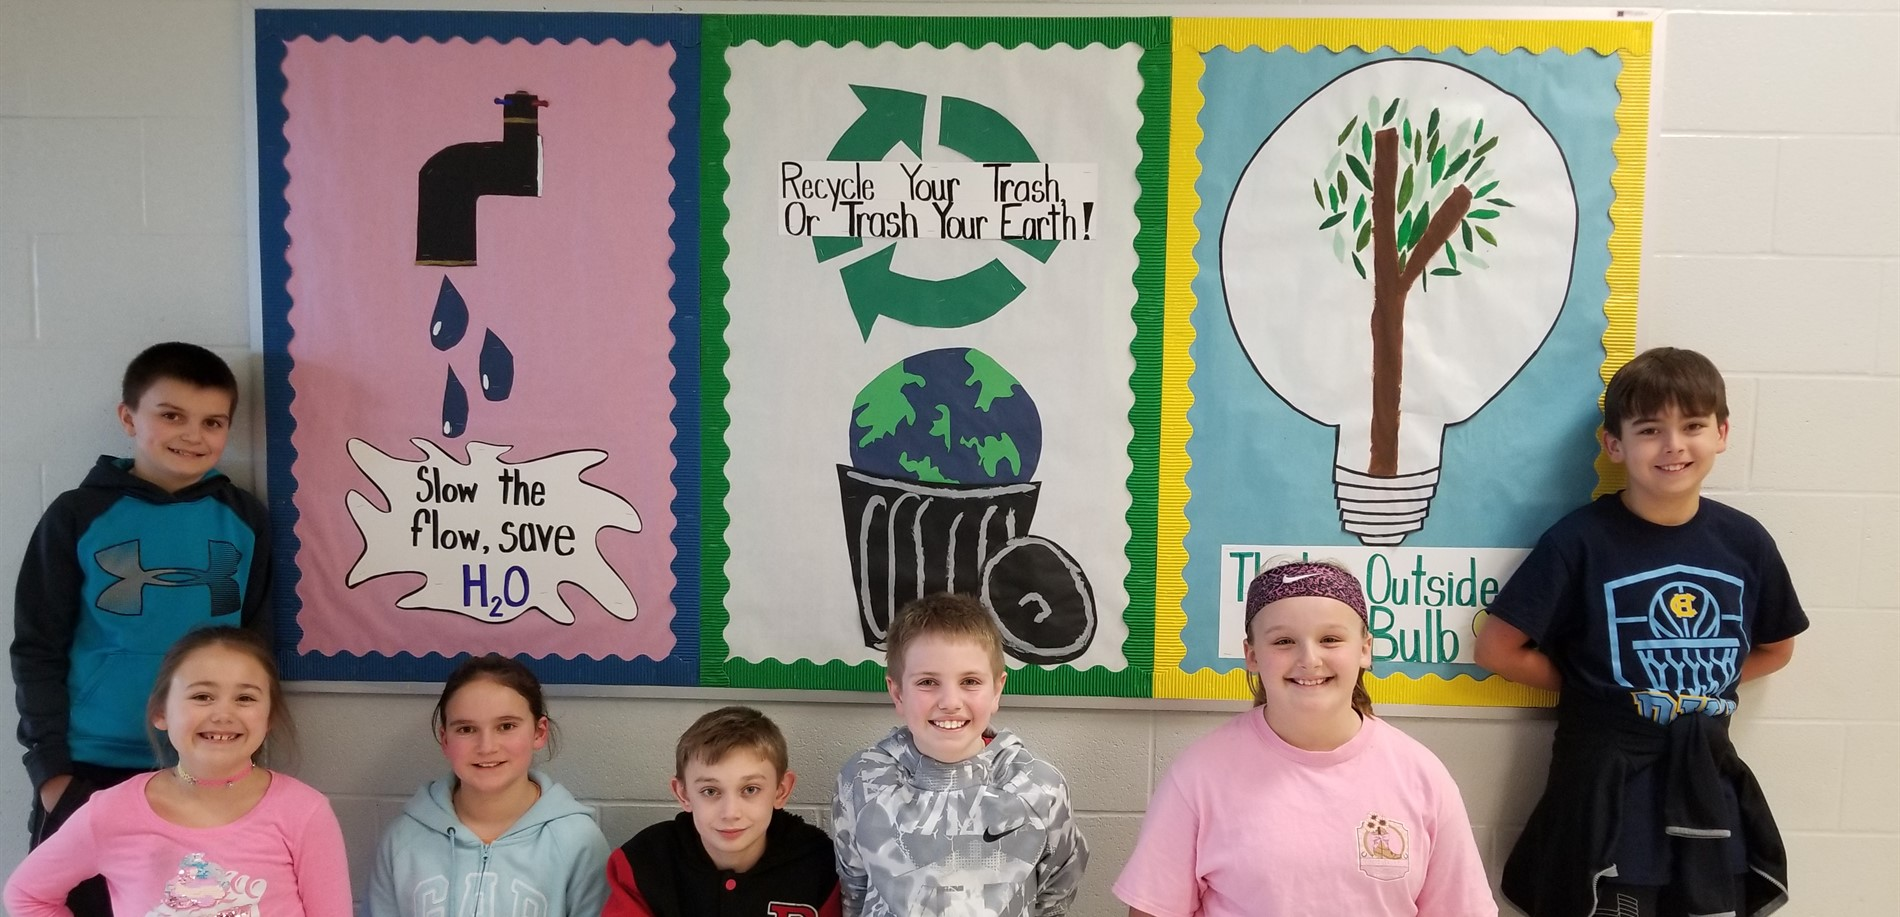 The Green Team reminds us about recycling and saving energy using their bulletin board.